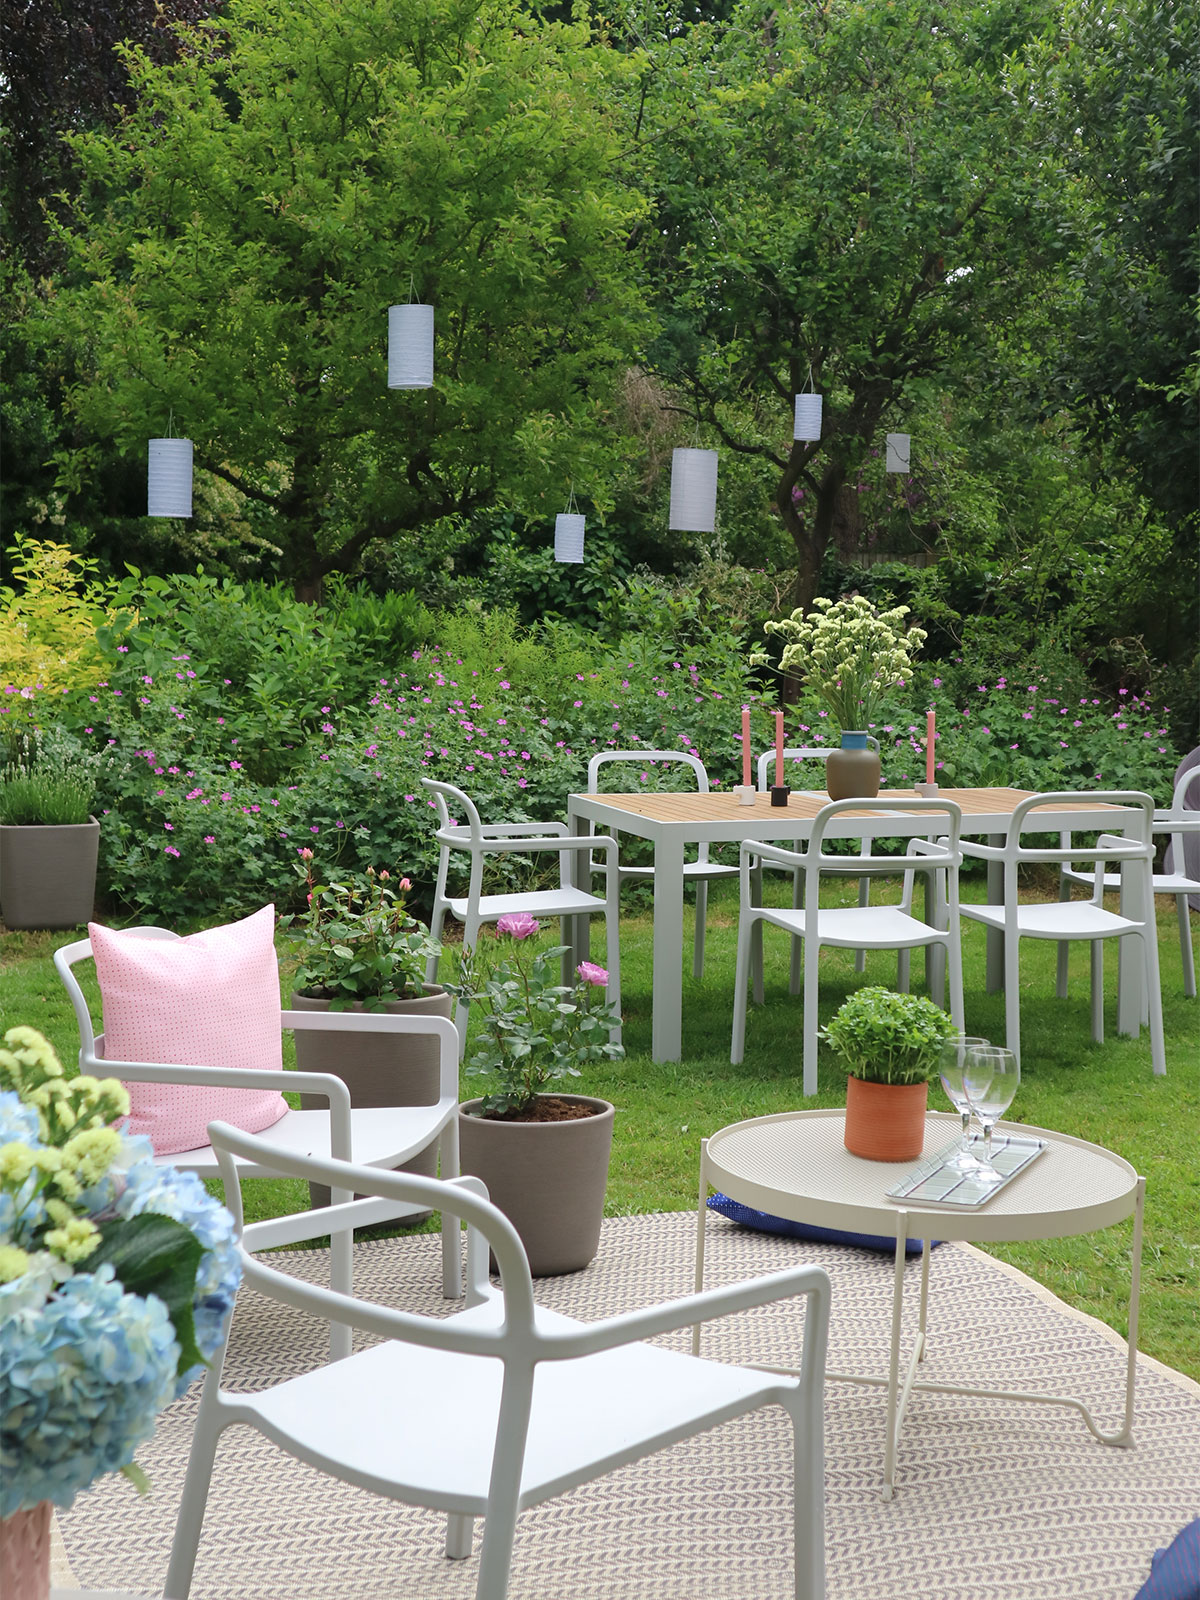 2LG Studio » Summer Entertaining Vibes